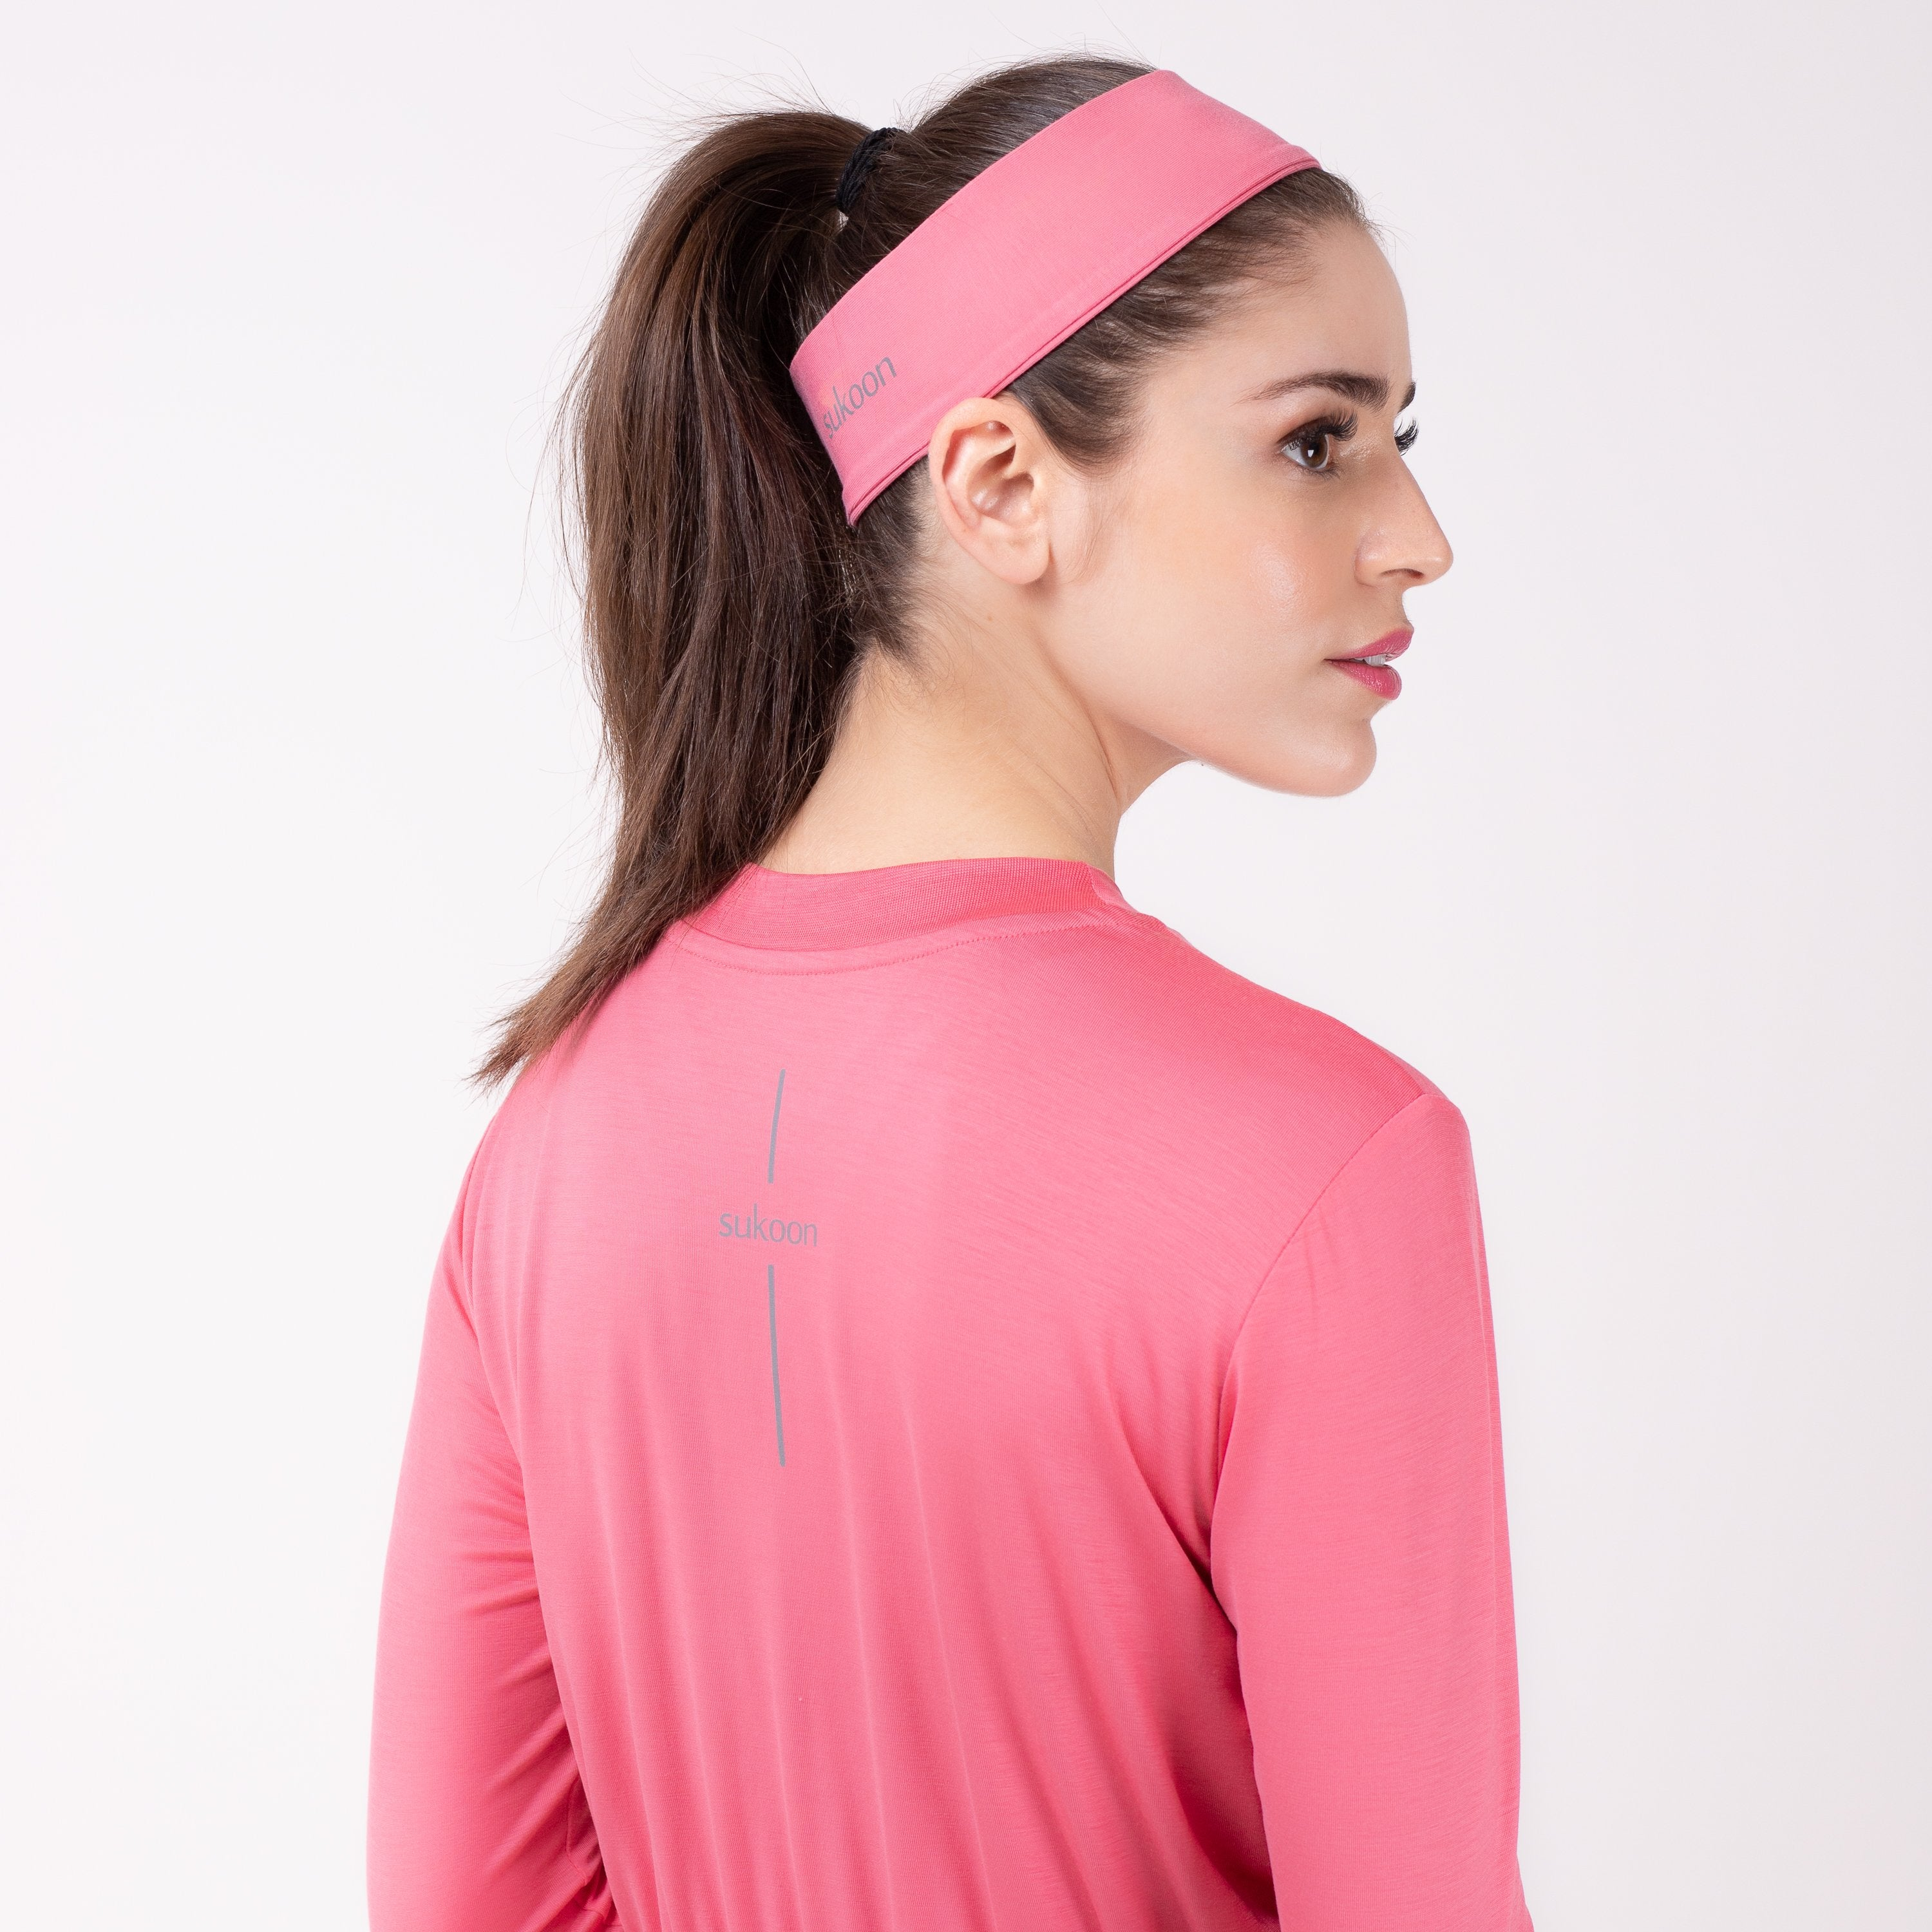 Back detail of woman in pink shirt with matching pink HAWA headband.